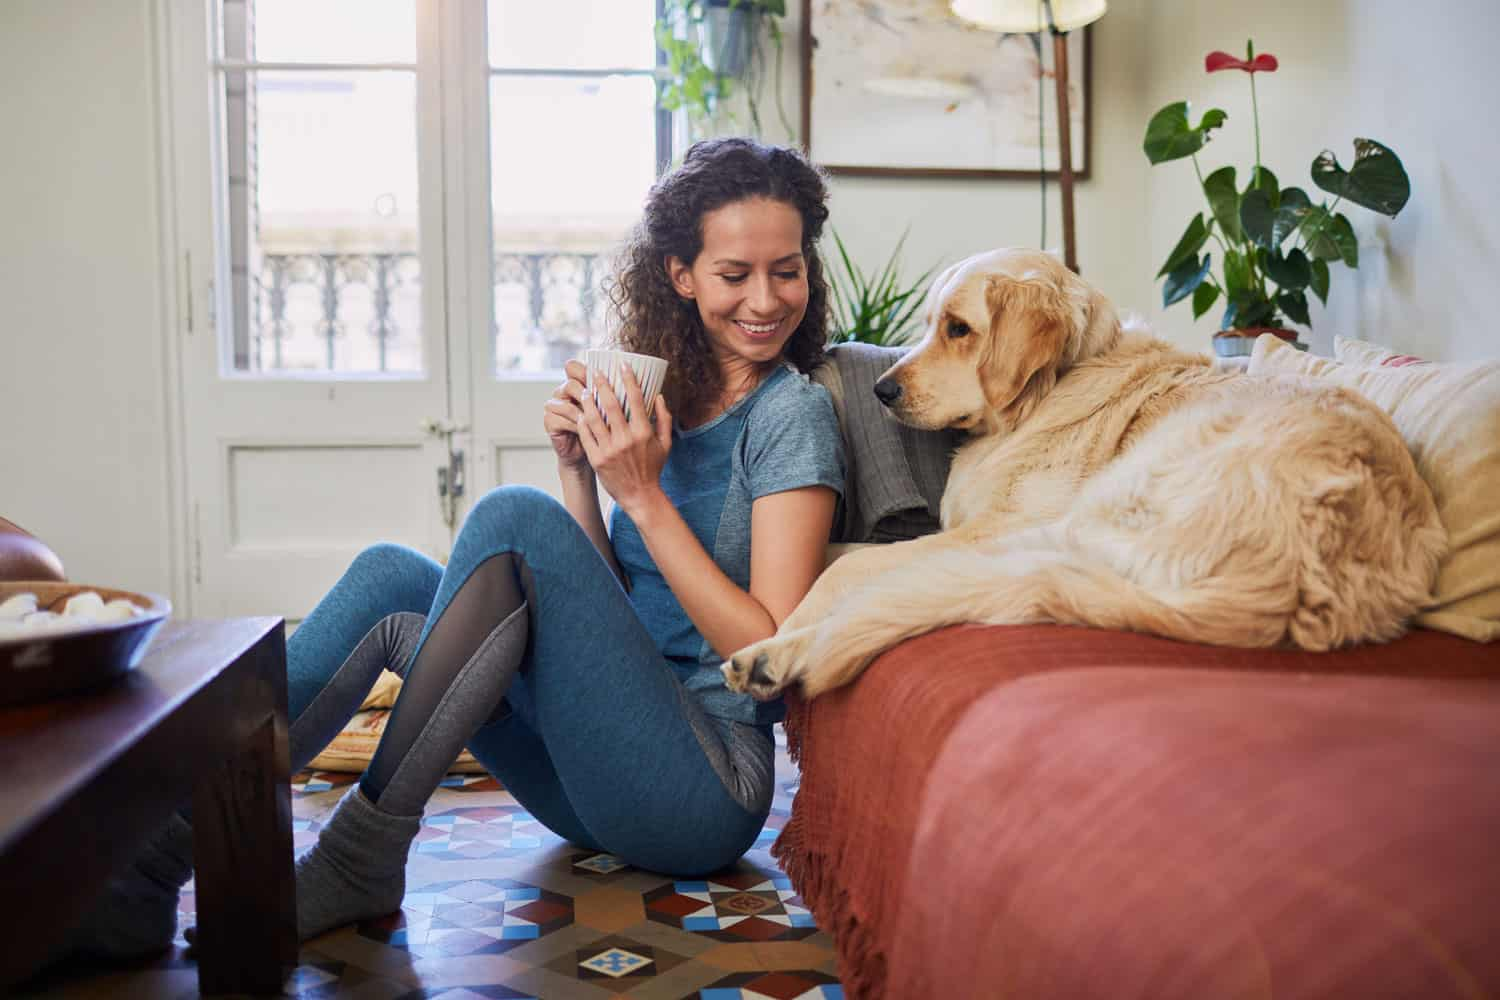 woman enjoying her apartment with her dog